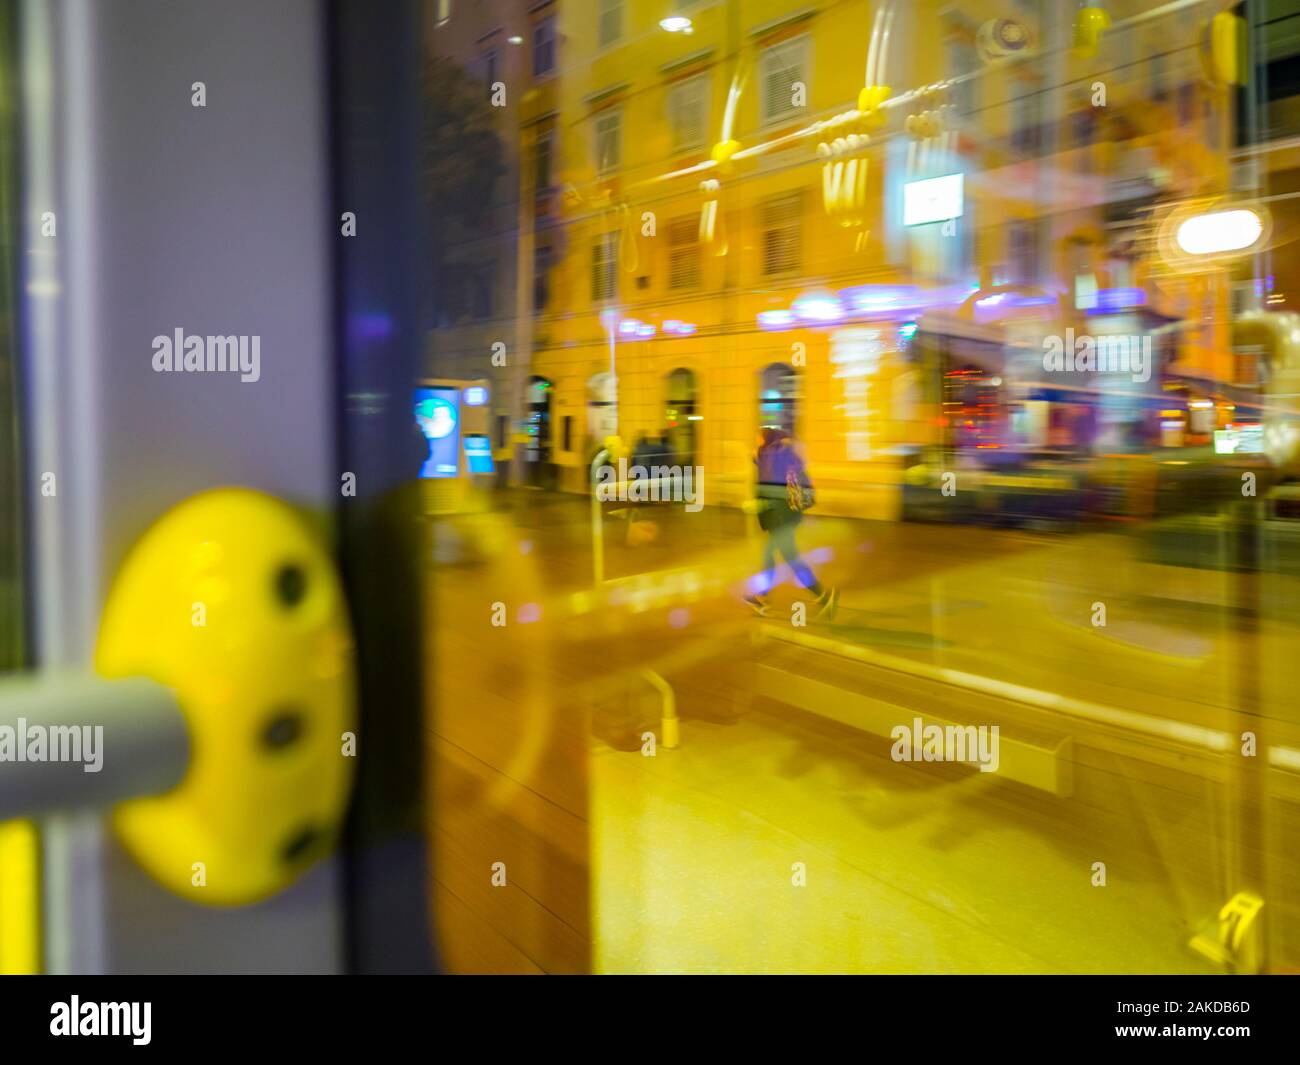 Run running walking for bus passenger view from bus through window city town urban street motion moving driving intentionally blurry blur background Stock Photo